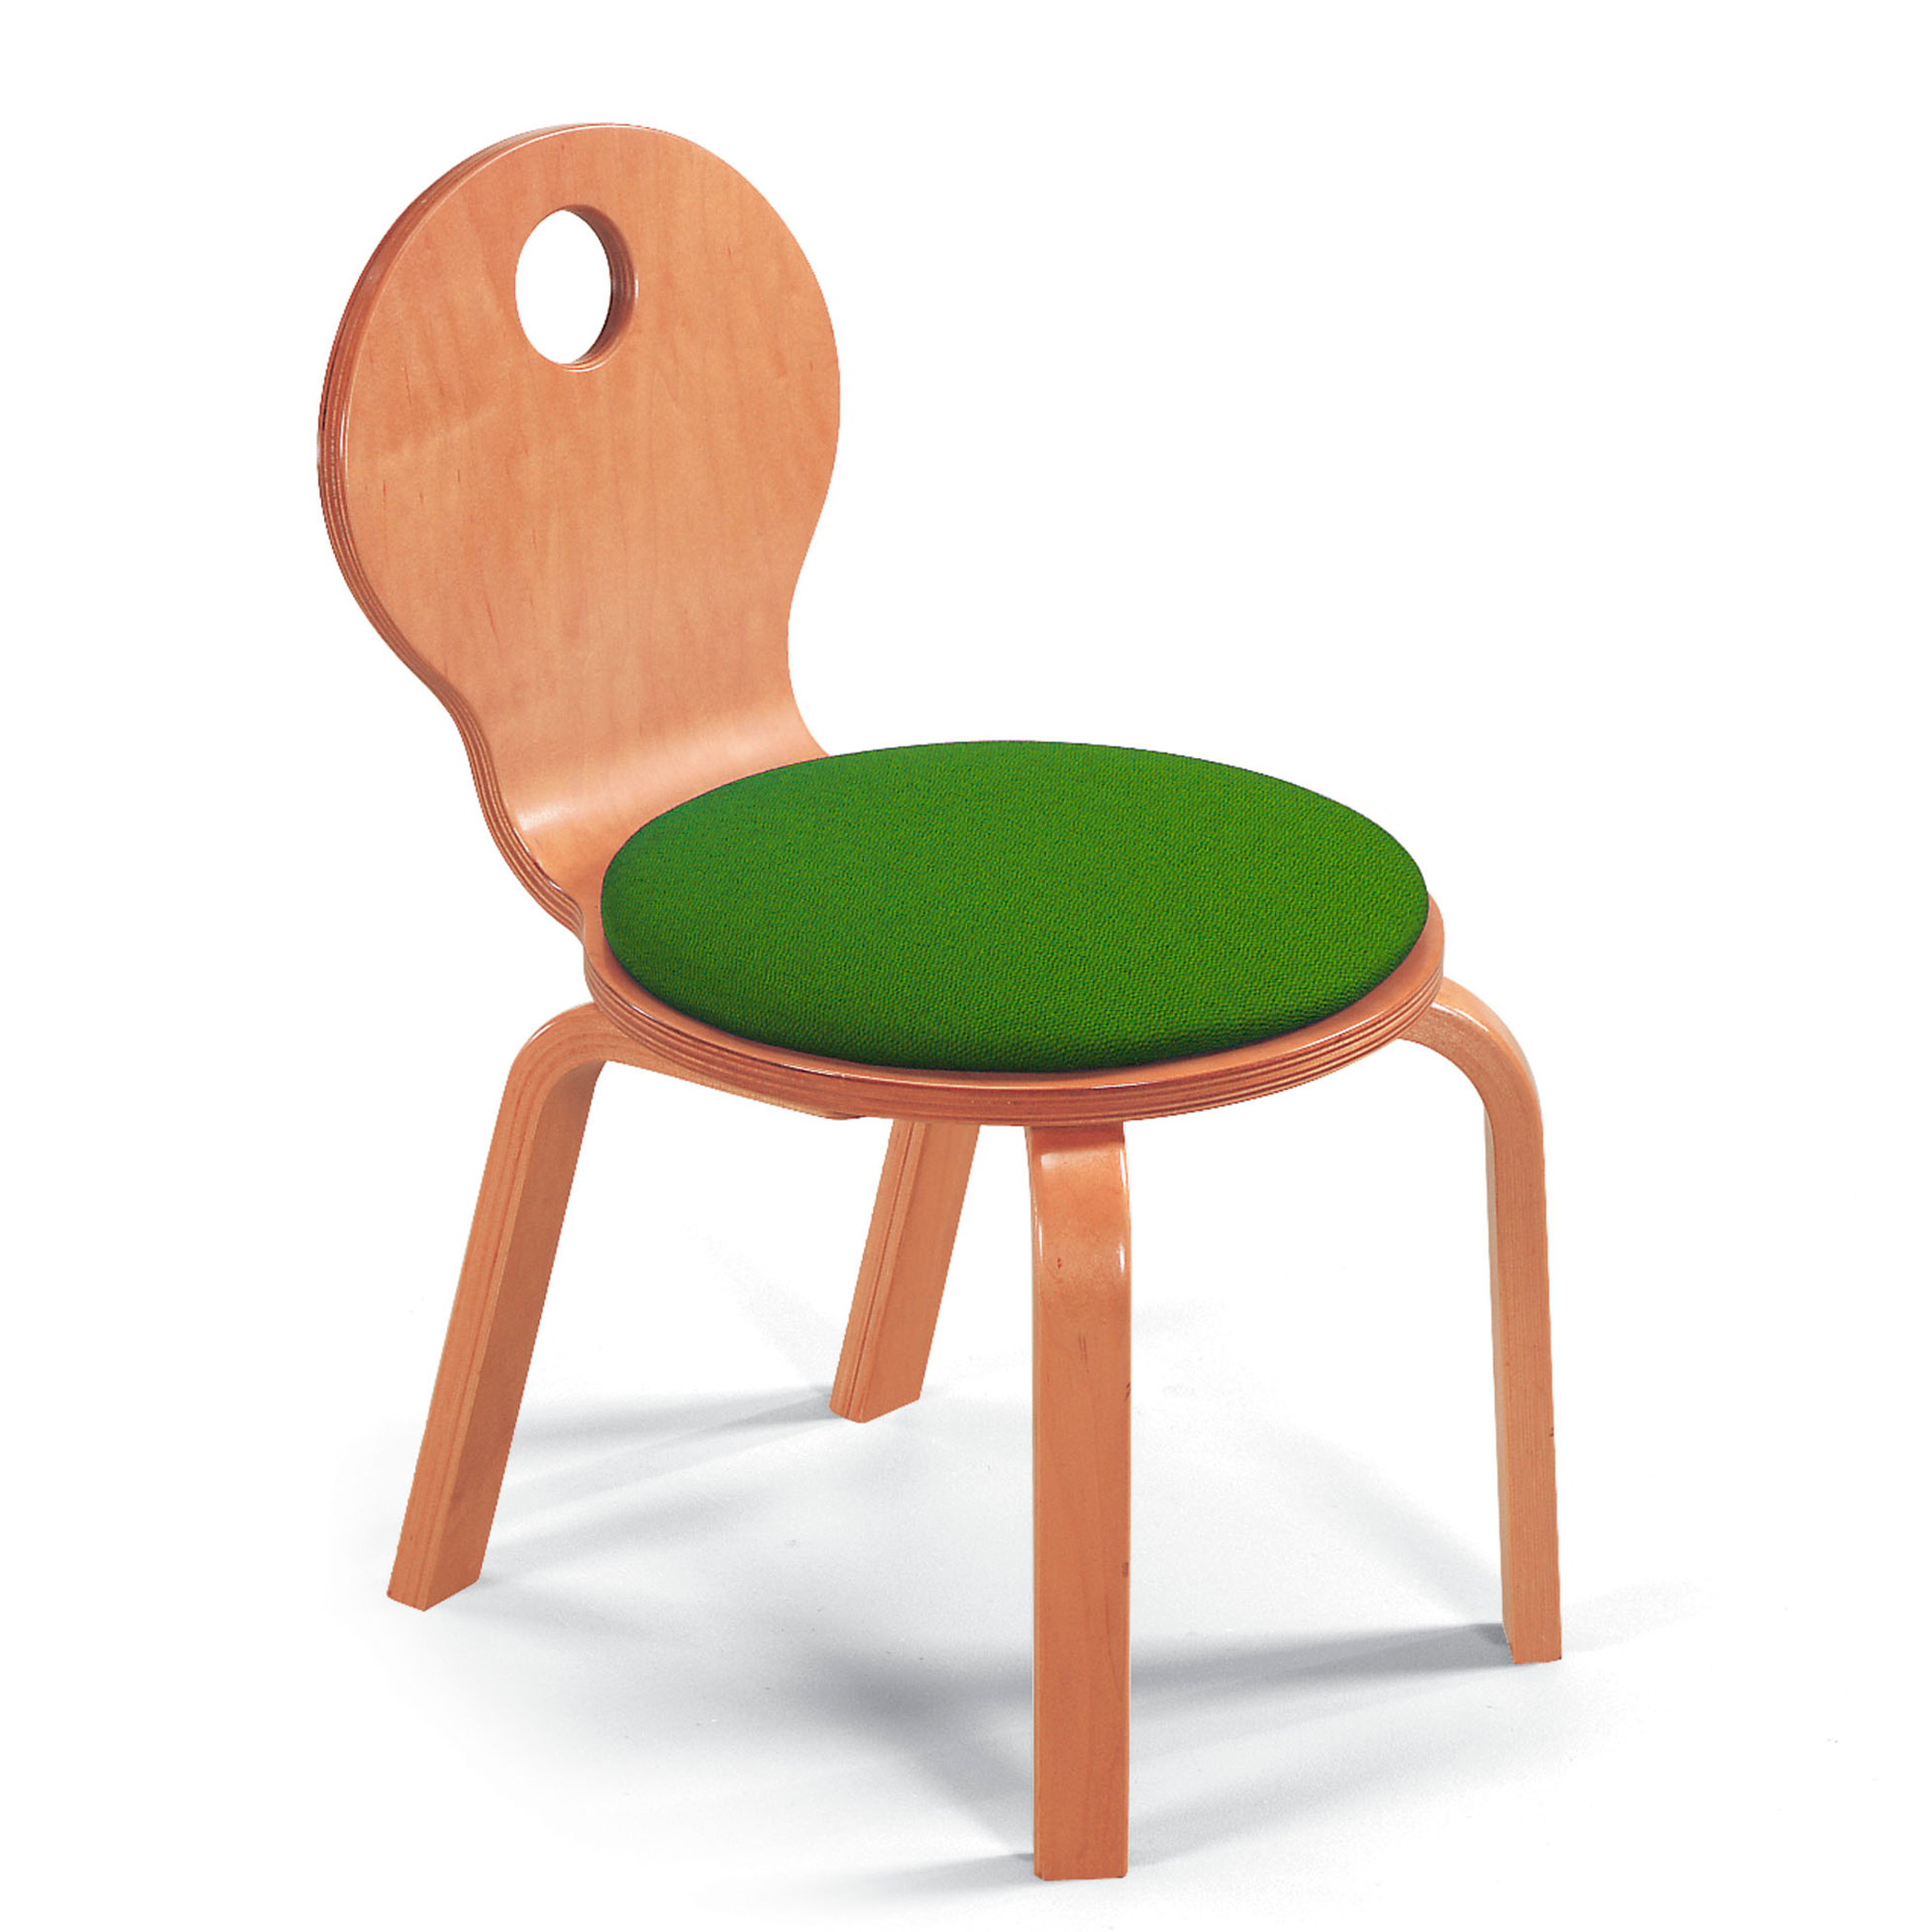 Childrens Bent Wood Upholstered Seat Chair